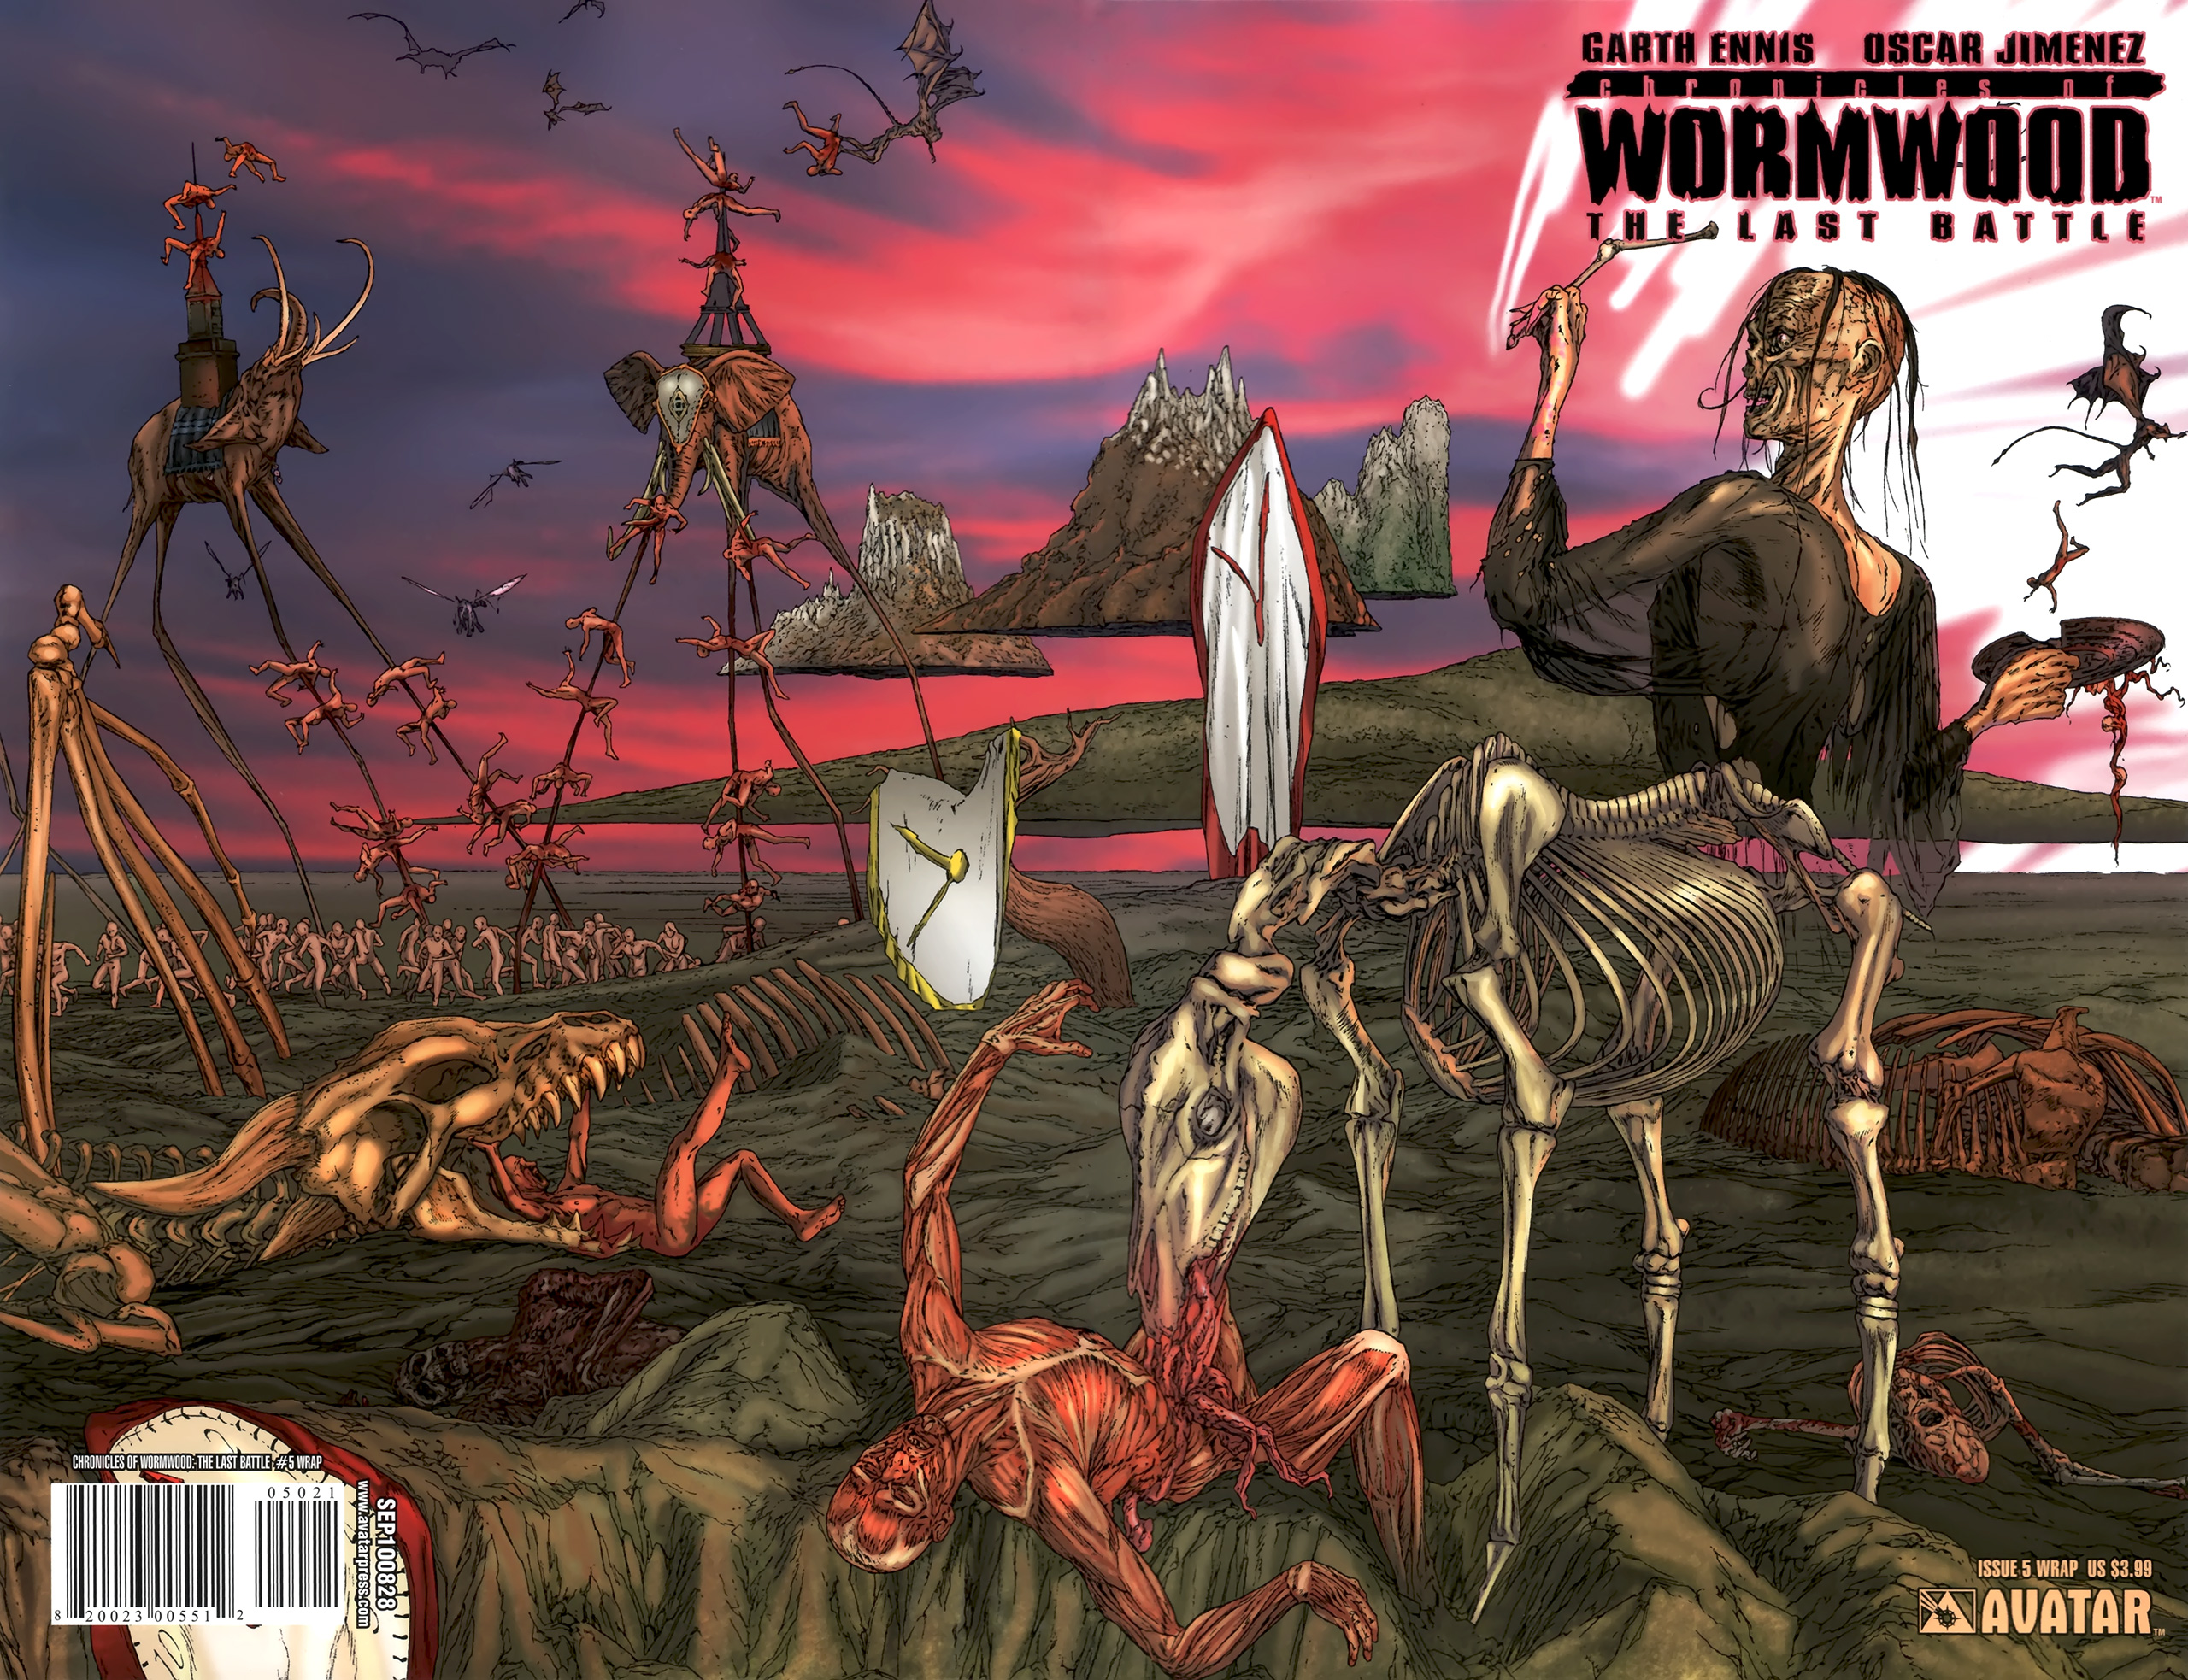 Read online Chronicles of Wormwood: The Last Battle comic -  Issue #5 - 2